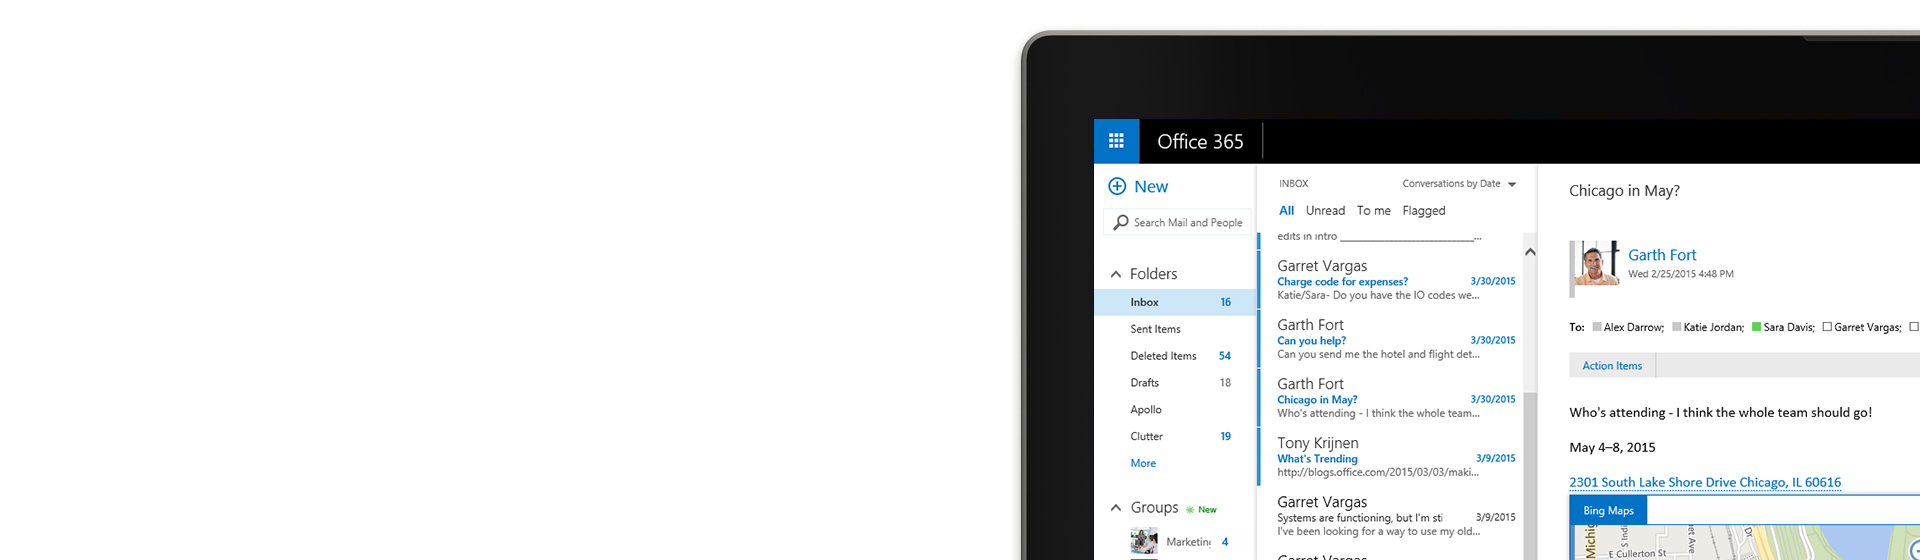 The corner of a computer screen displaying an email inbox in Office 365